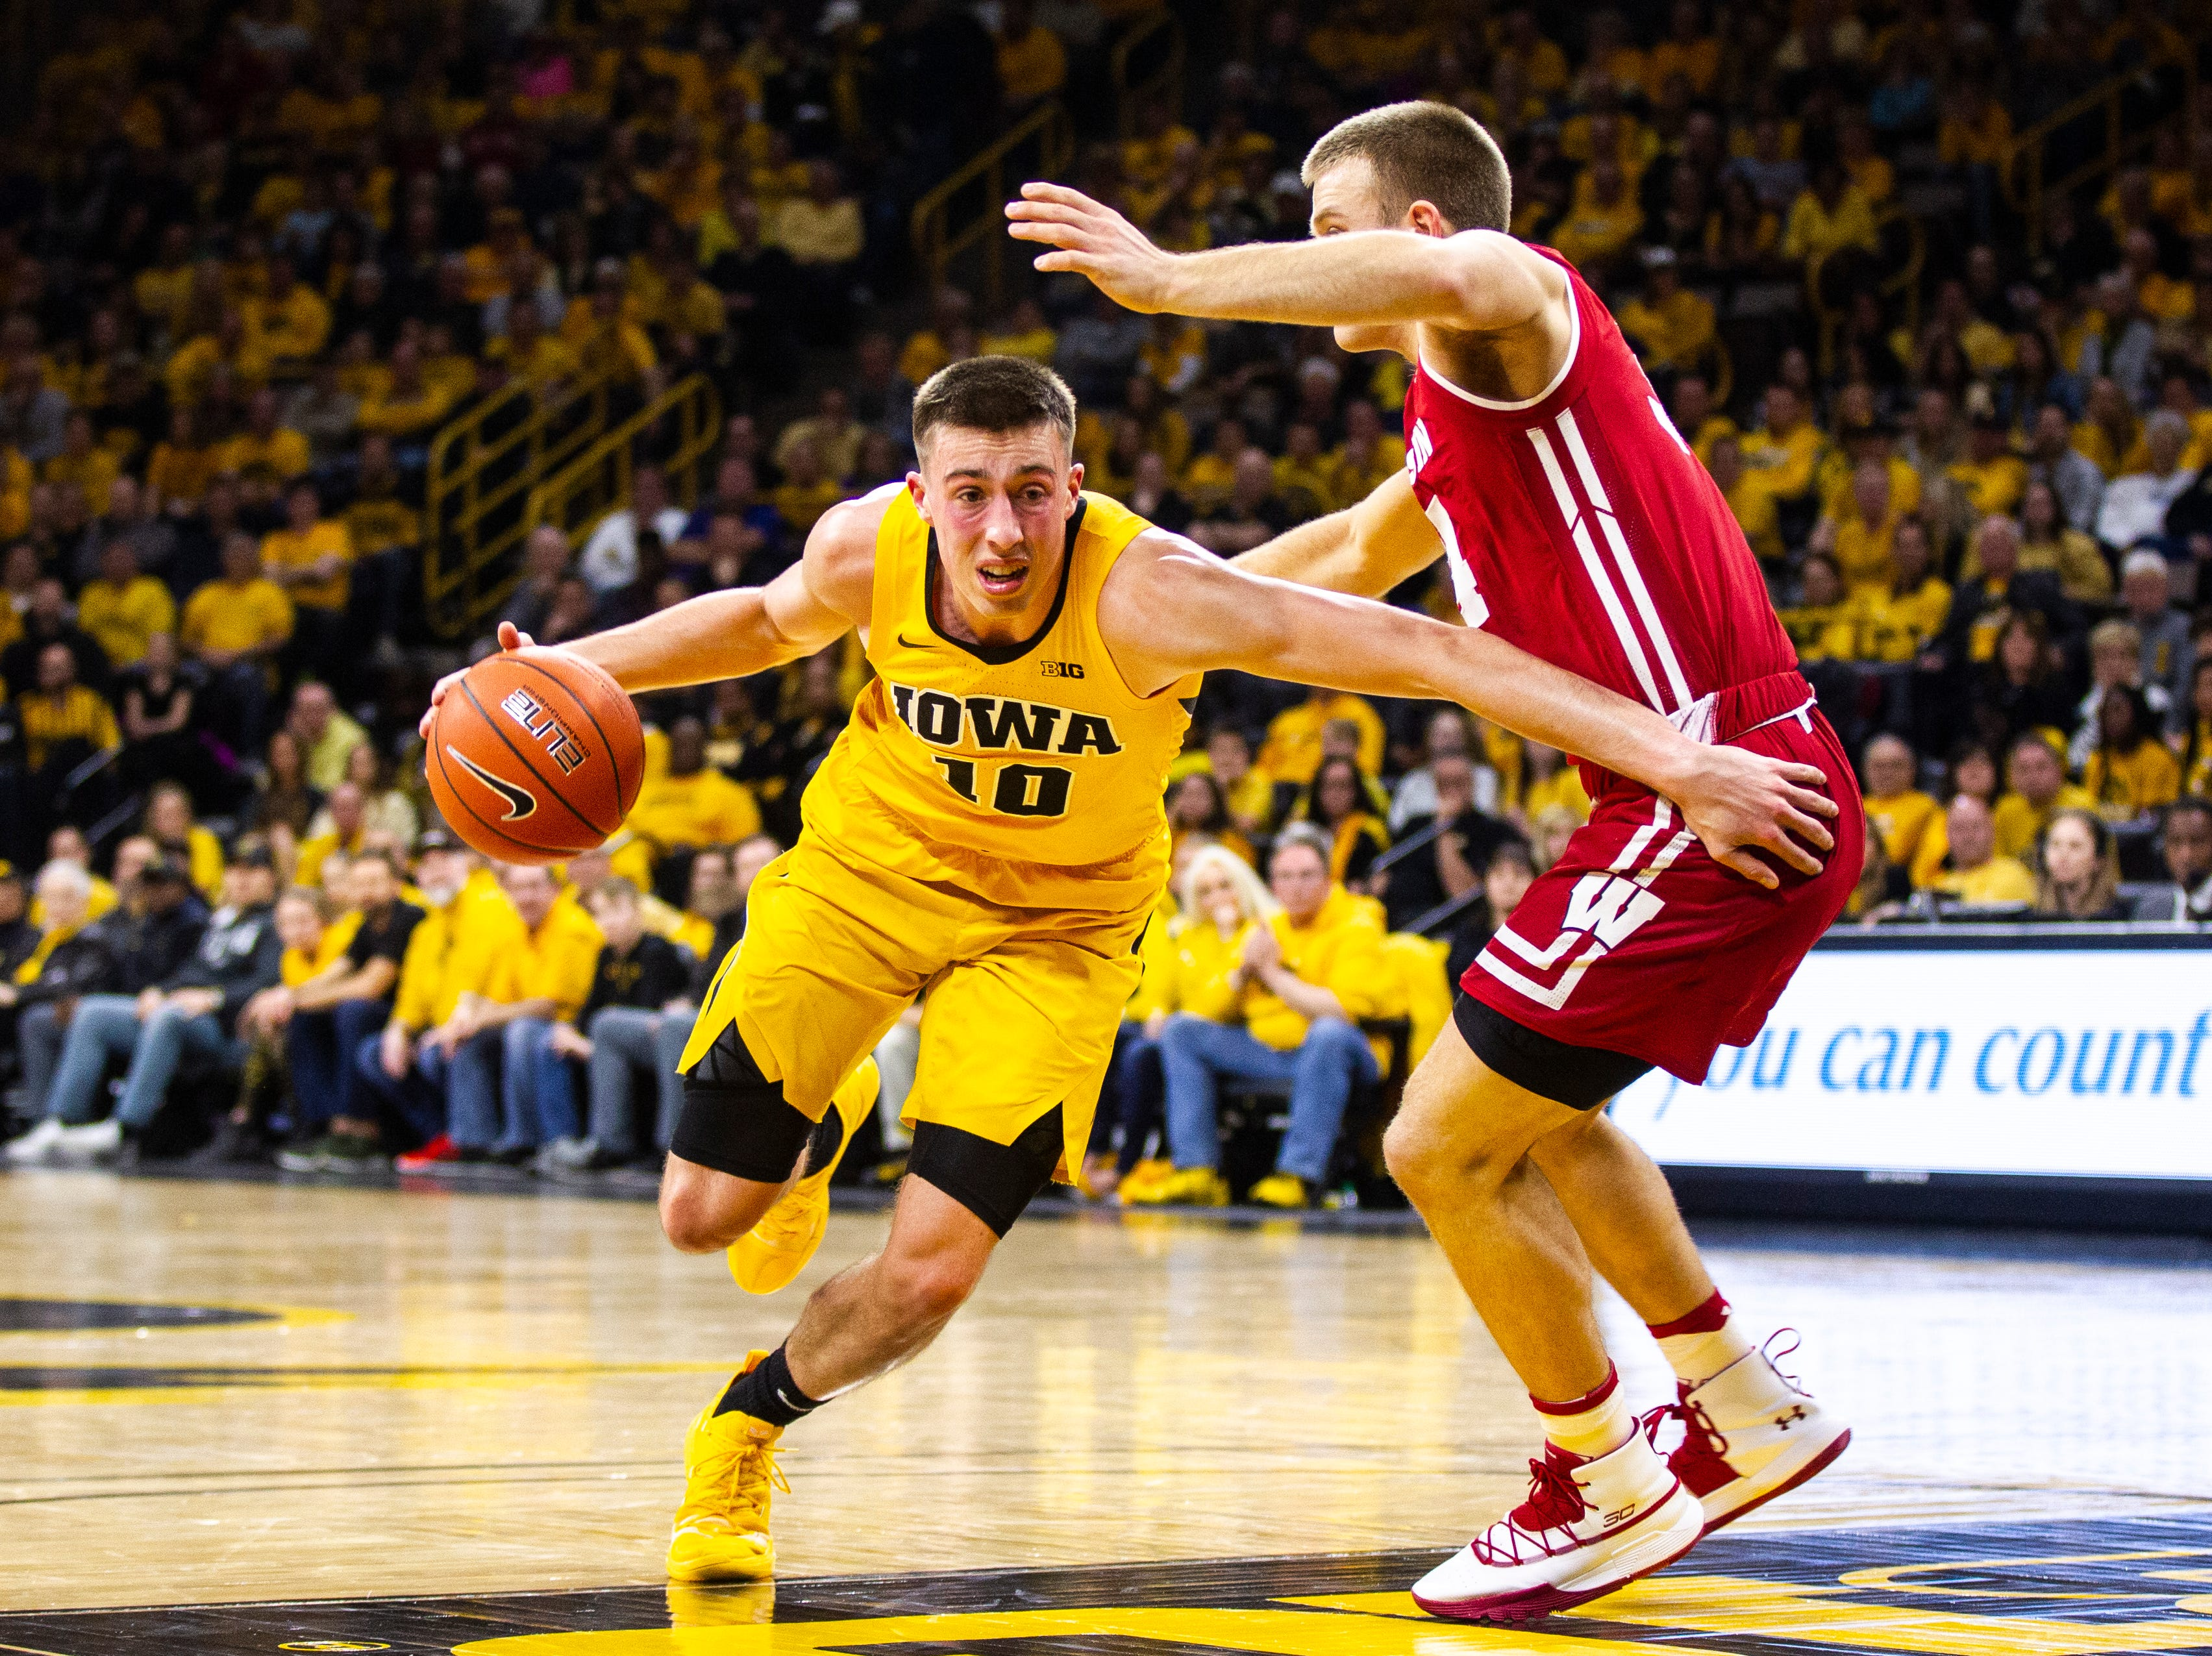 Iowa guard Joe Wieskamp (10) drives to the hoop during a NCAA Big Ten Conference men's basketball game on Friday, Nov. 30, 2018, at Carver-Hawkeye Arena in Iowa City.